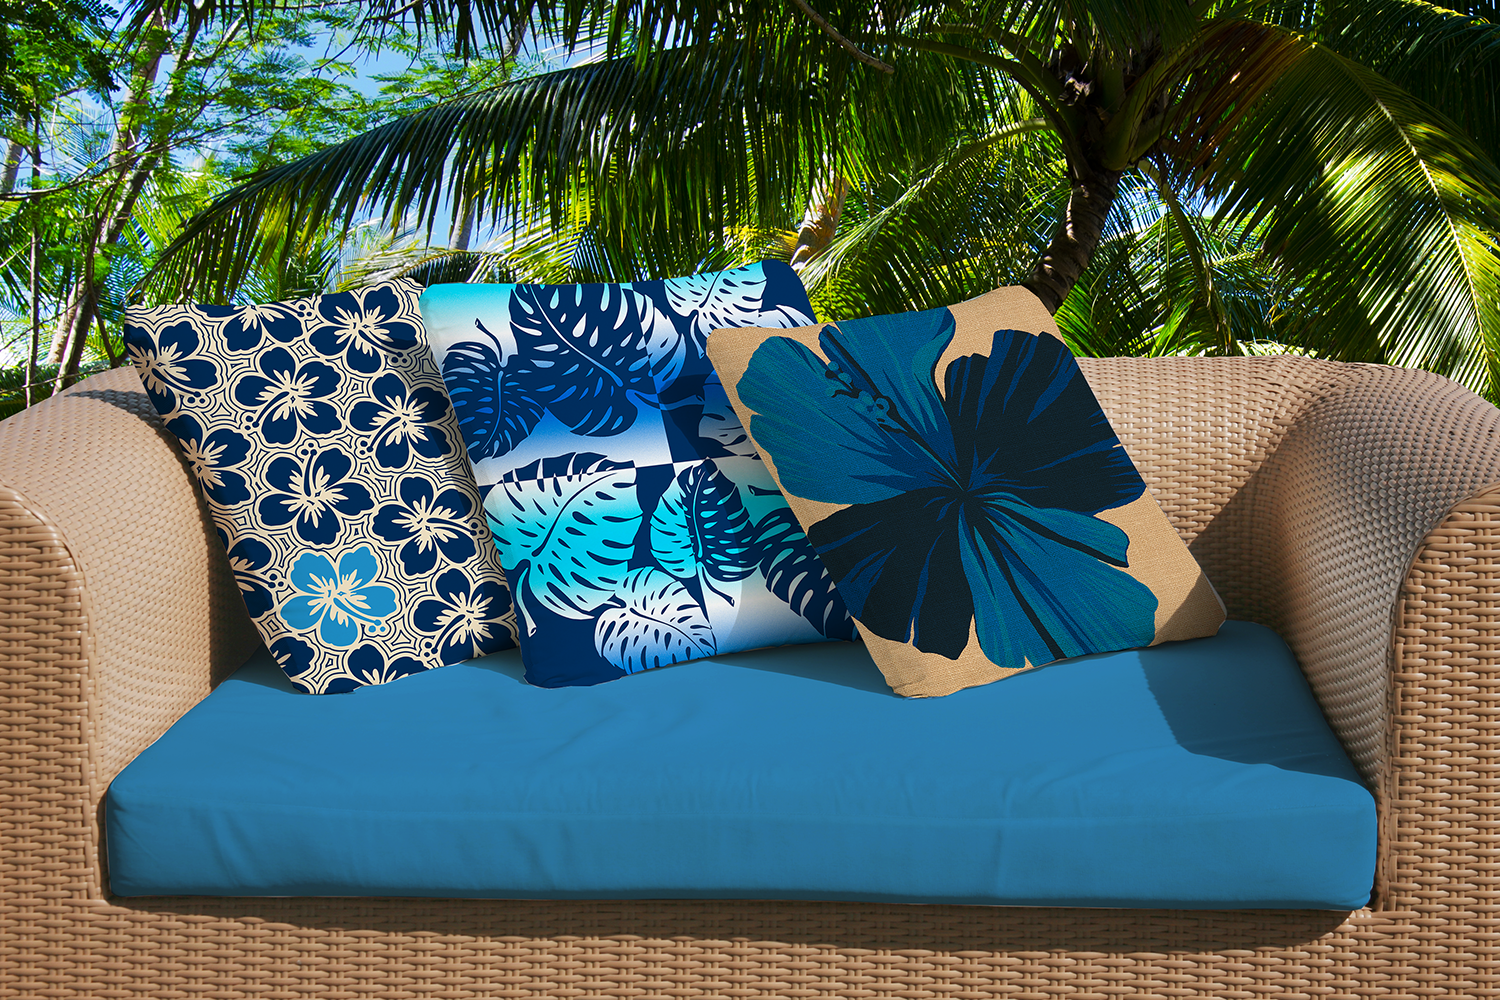 Hawaiian Decor Tropical Home Furnishings Decorative Pillows Tiki